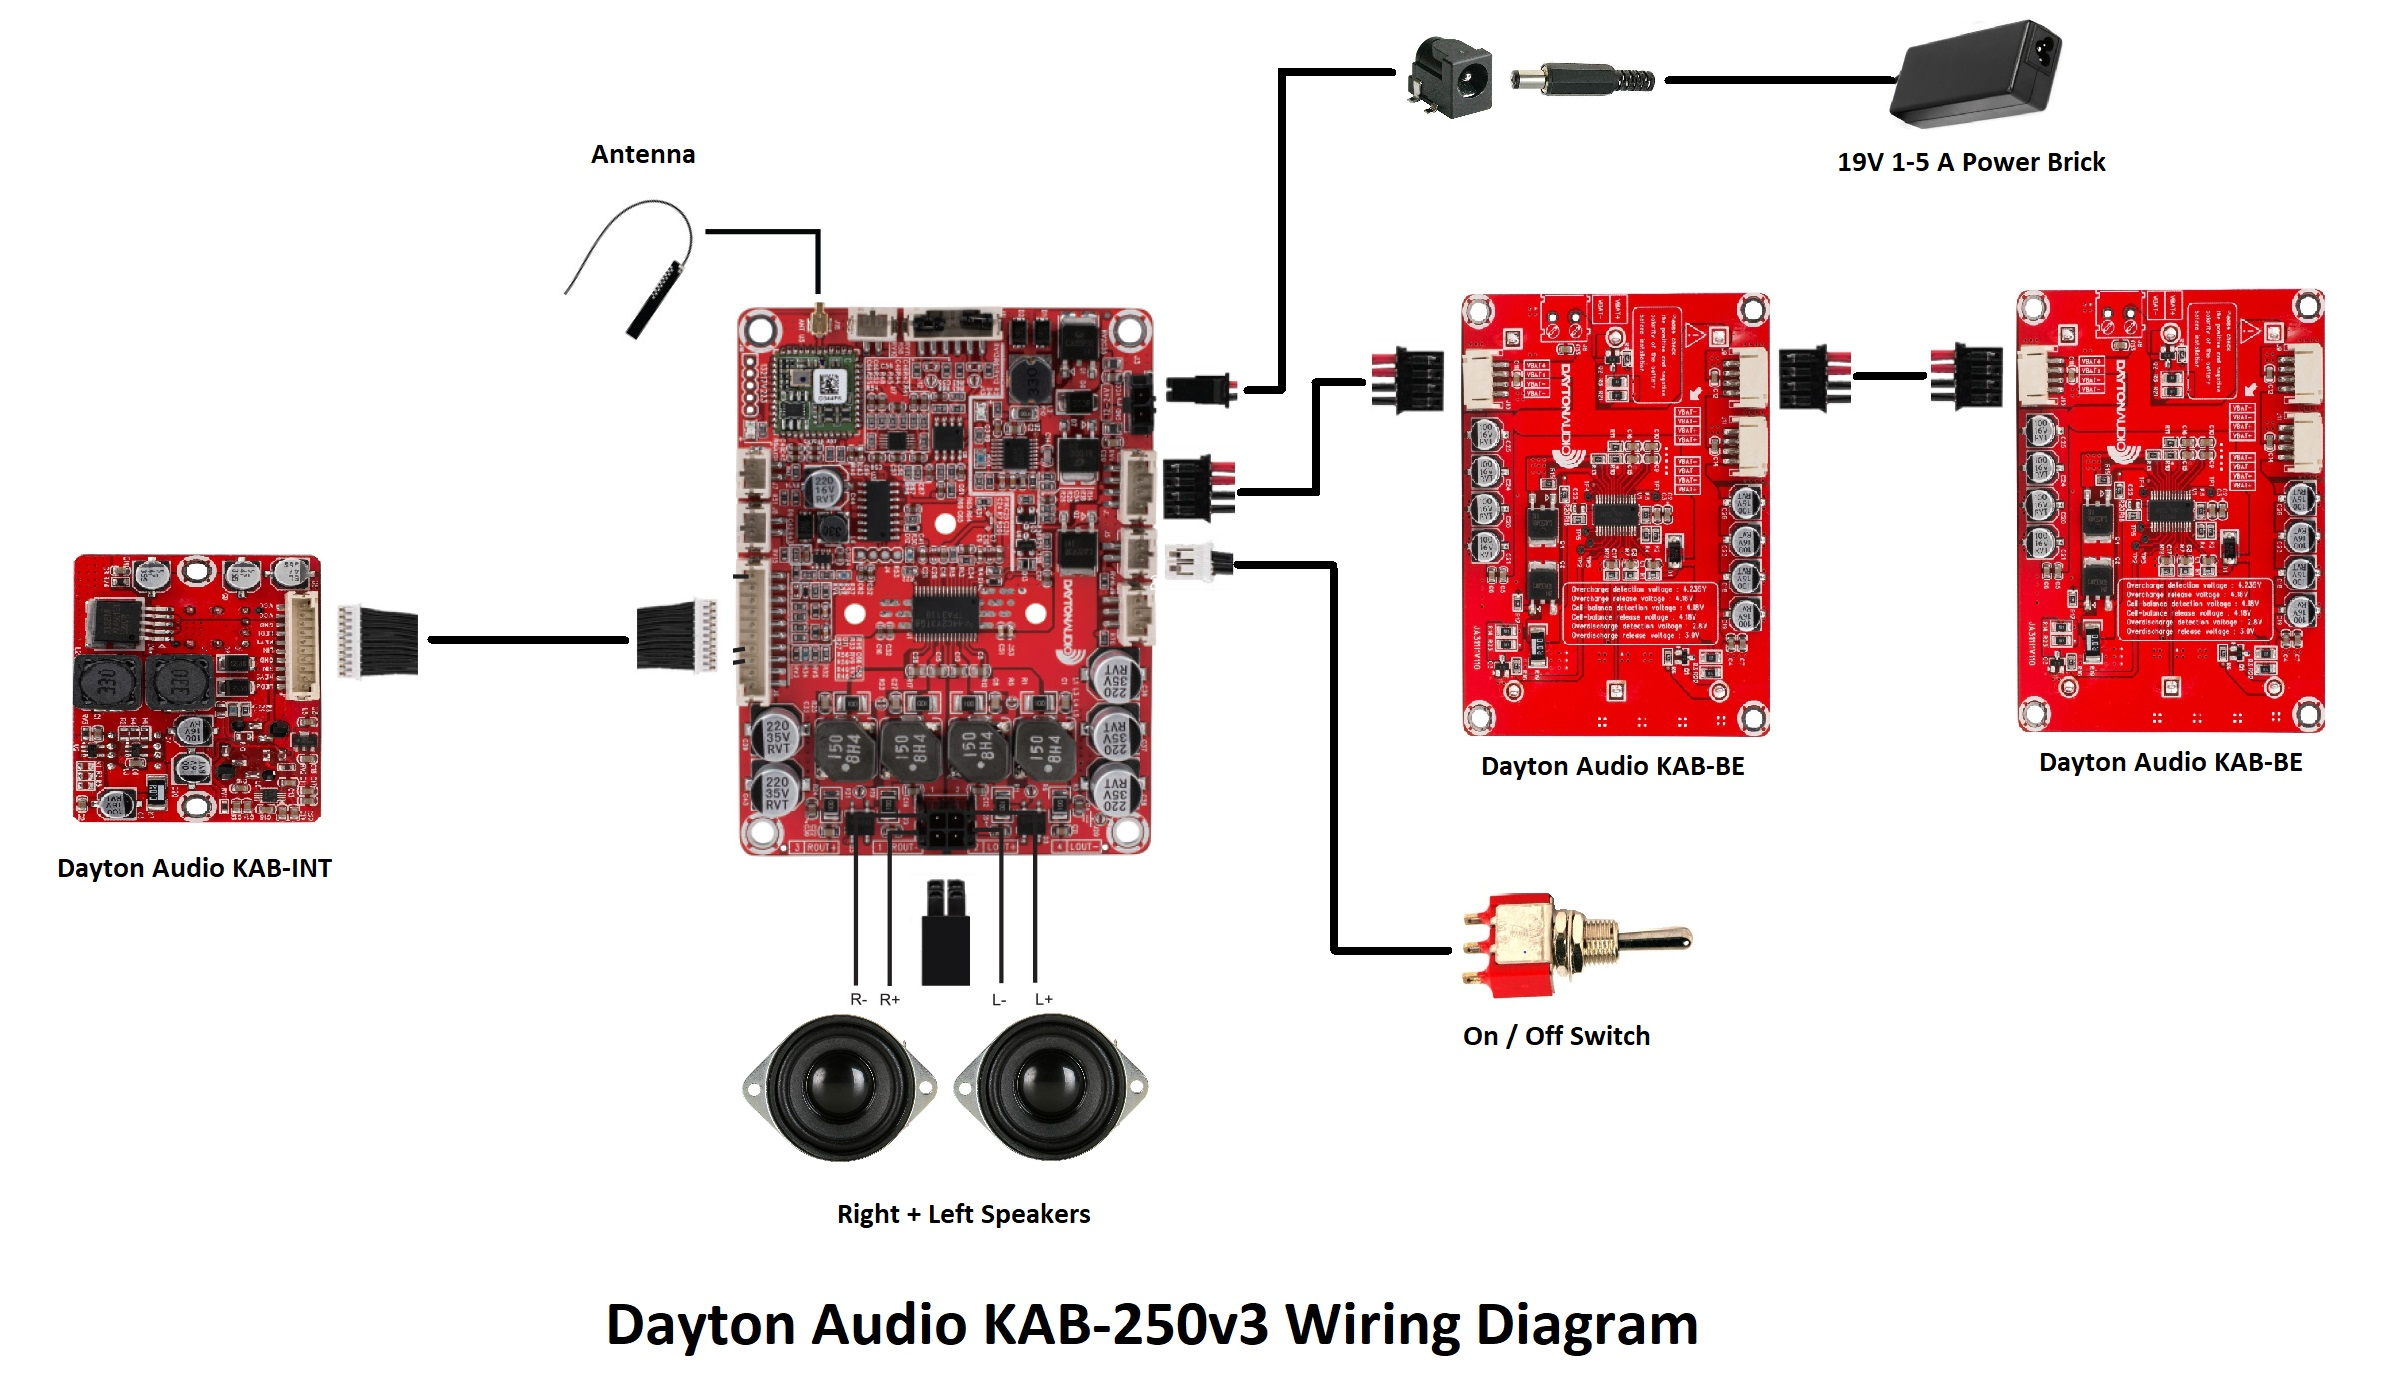 Dayton Speaker Wiring Diagram Diagrams 115v Winch Get Free Image About Audio Kab 250v3 Review Mini Bluetooth Amp Board Rh Audiojudgement Com